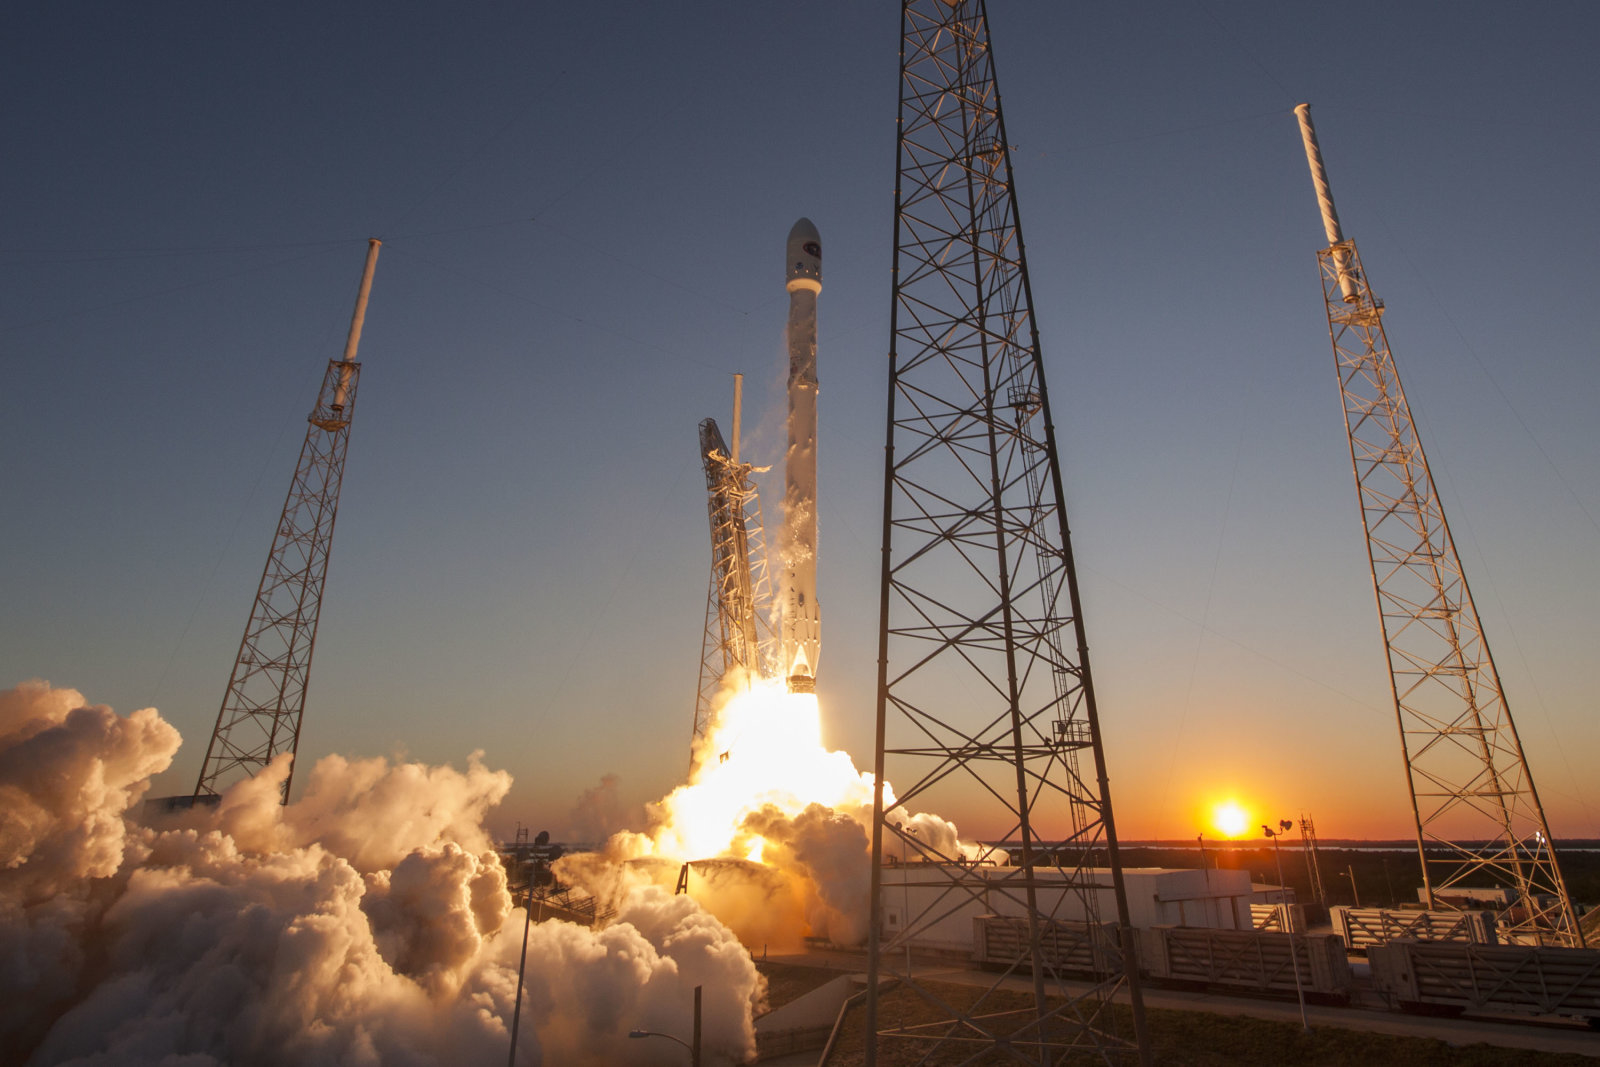 CAPE CANAVERAL, FL - FEBRUARY 11: In this handout provided by the National Aeronautics and Space Administration (NASA), SpaceX's Falcon 9 rocket lifts off from Launch Complex 40 carrying the Deep Space Climate Observatory (DSCOVR) satellite on SpaceXs first deep space mission at Cape Canaveral Air Force Station on February 11, 2015 in Cape Canaveral, Florida. (Photo by NASA via Getty Images)